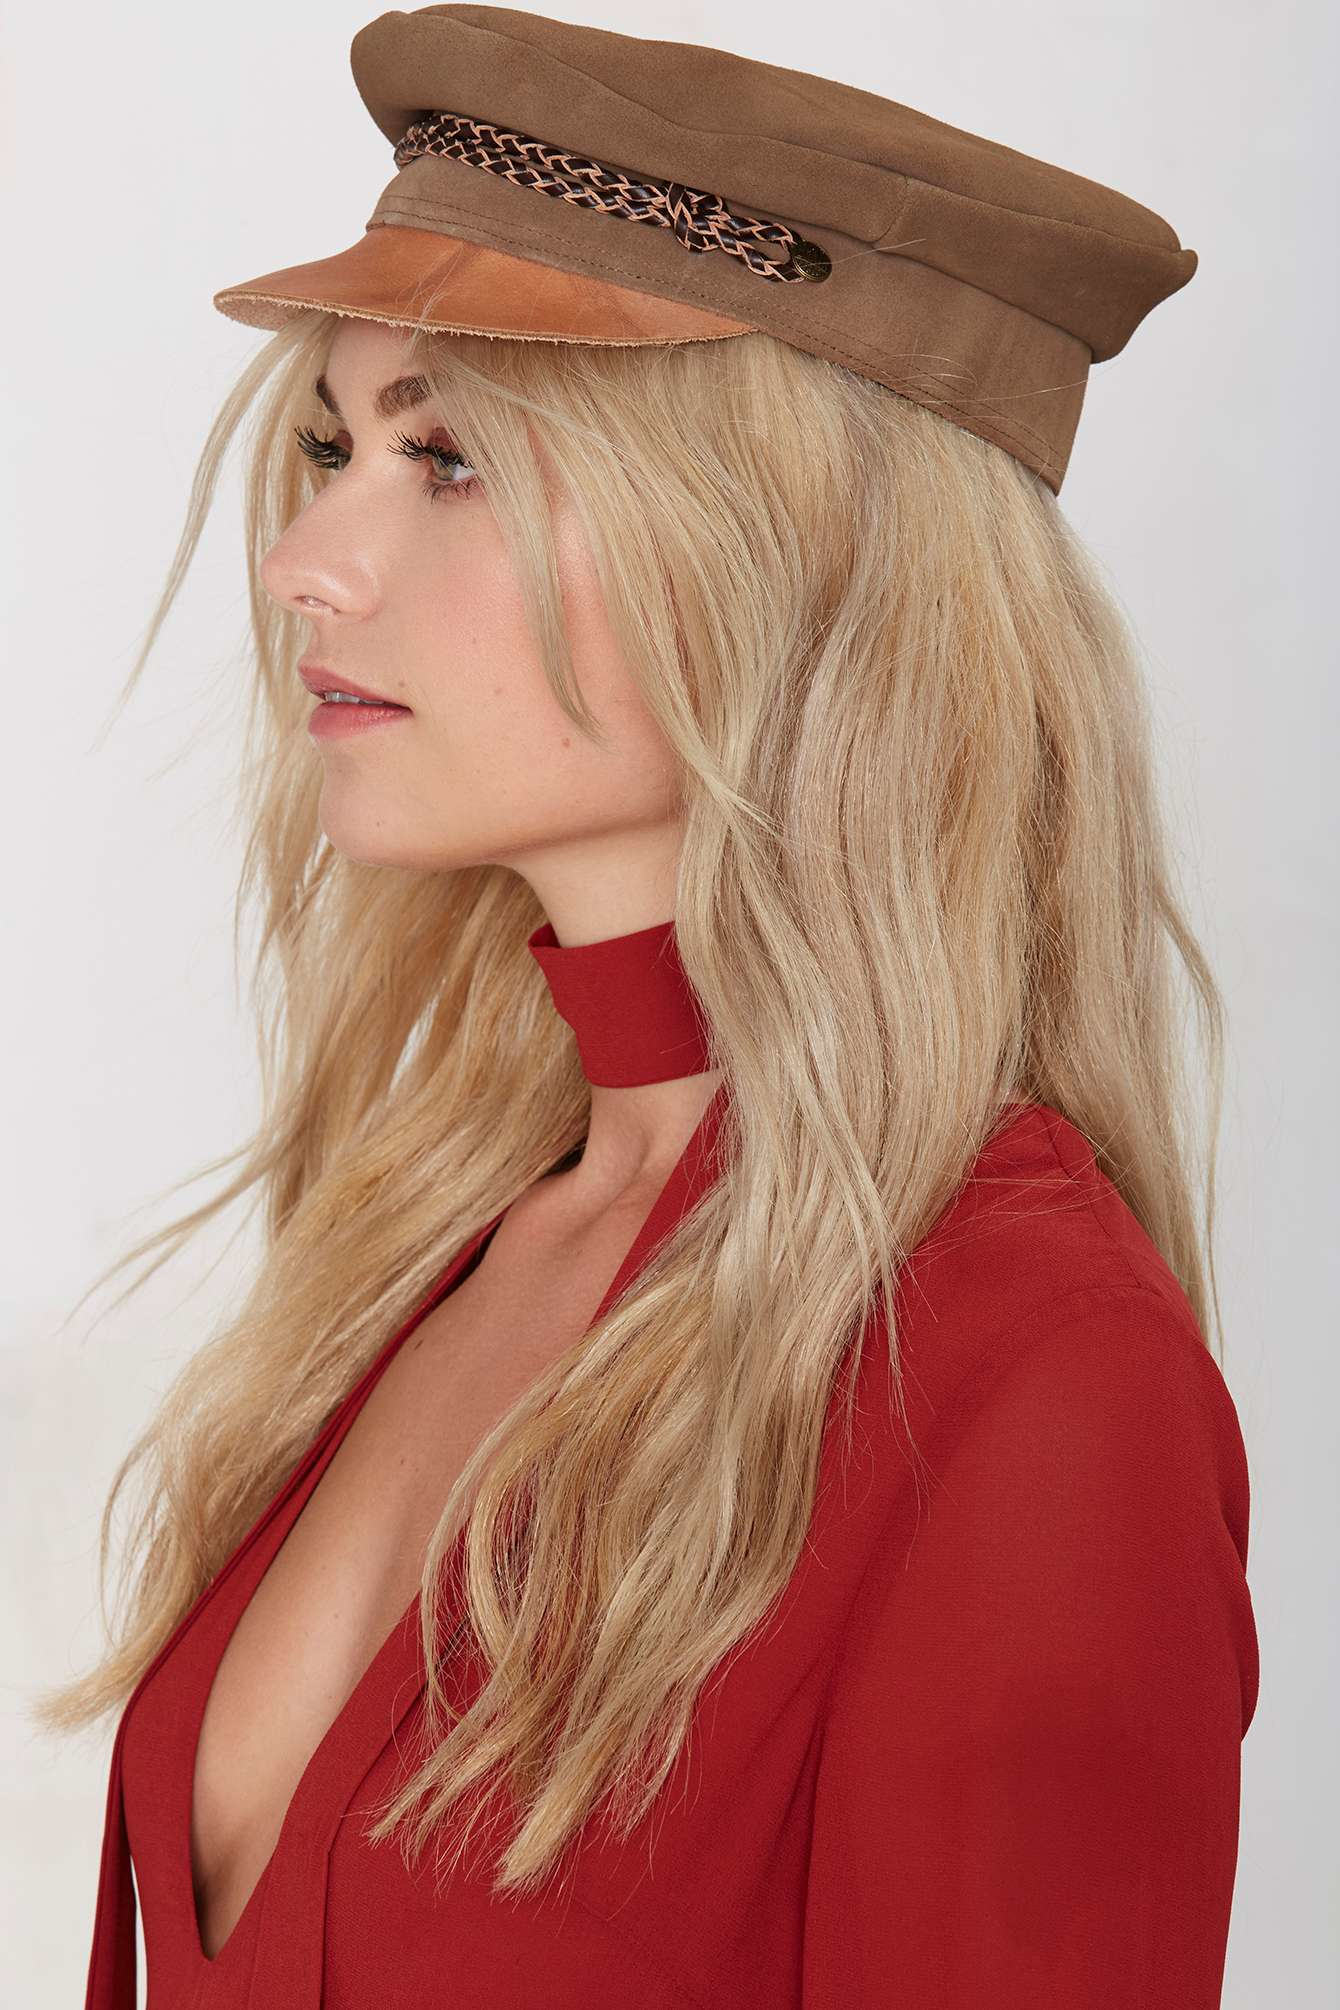 ... best price lyst nasty gal brixton kayla suede cap in natural 68d13 5530f fad4966e81fb